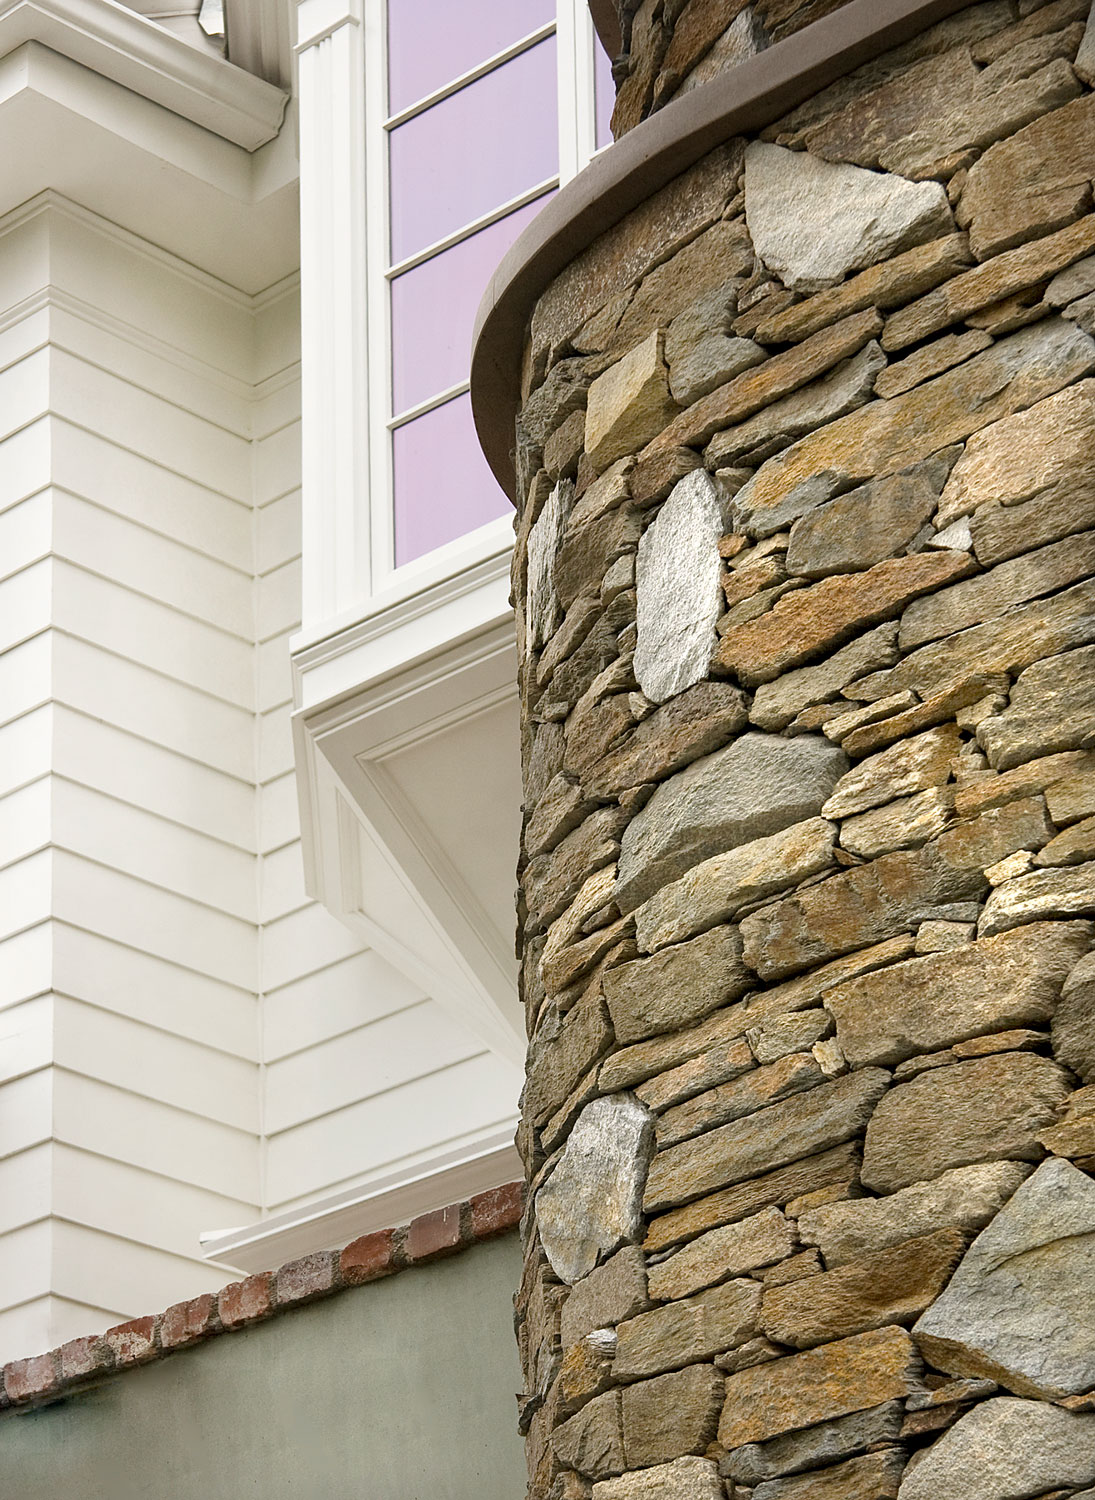 13-exterior-stone-siding-detail-gary-drake-general-contractor.jpg